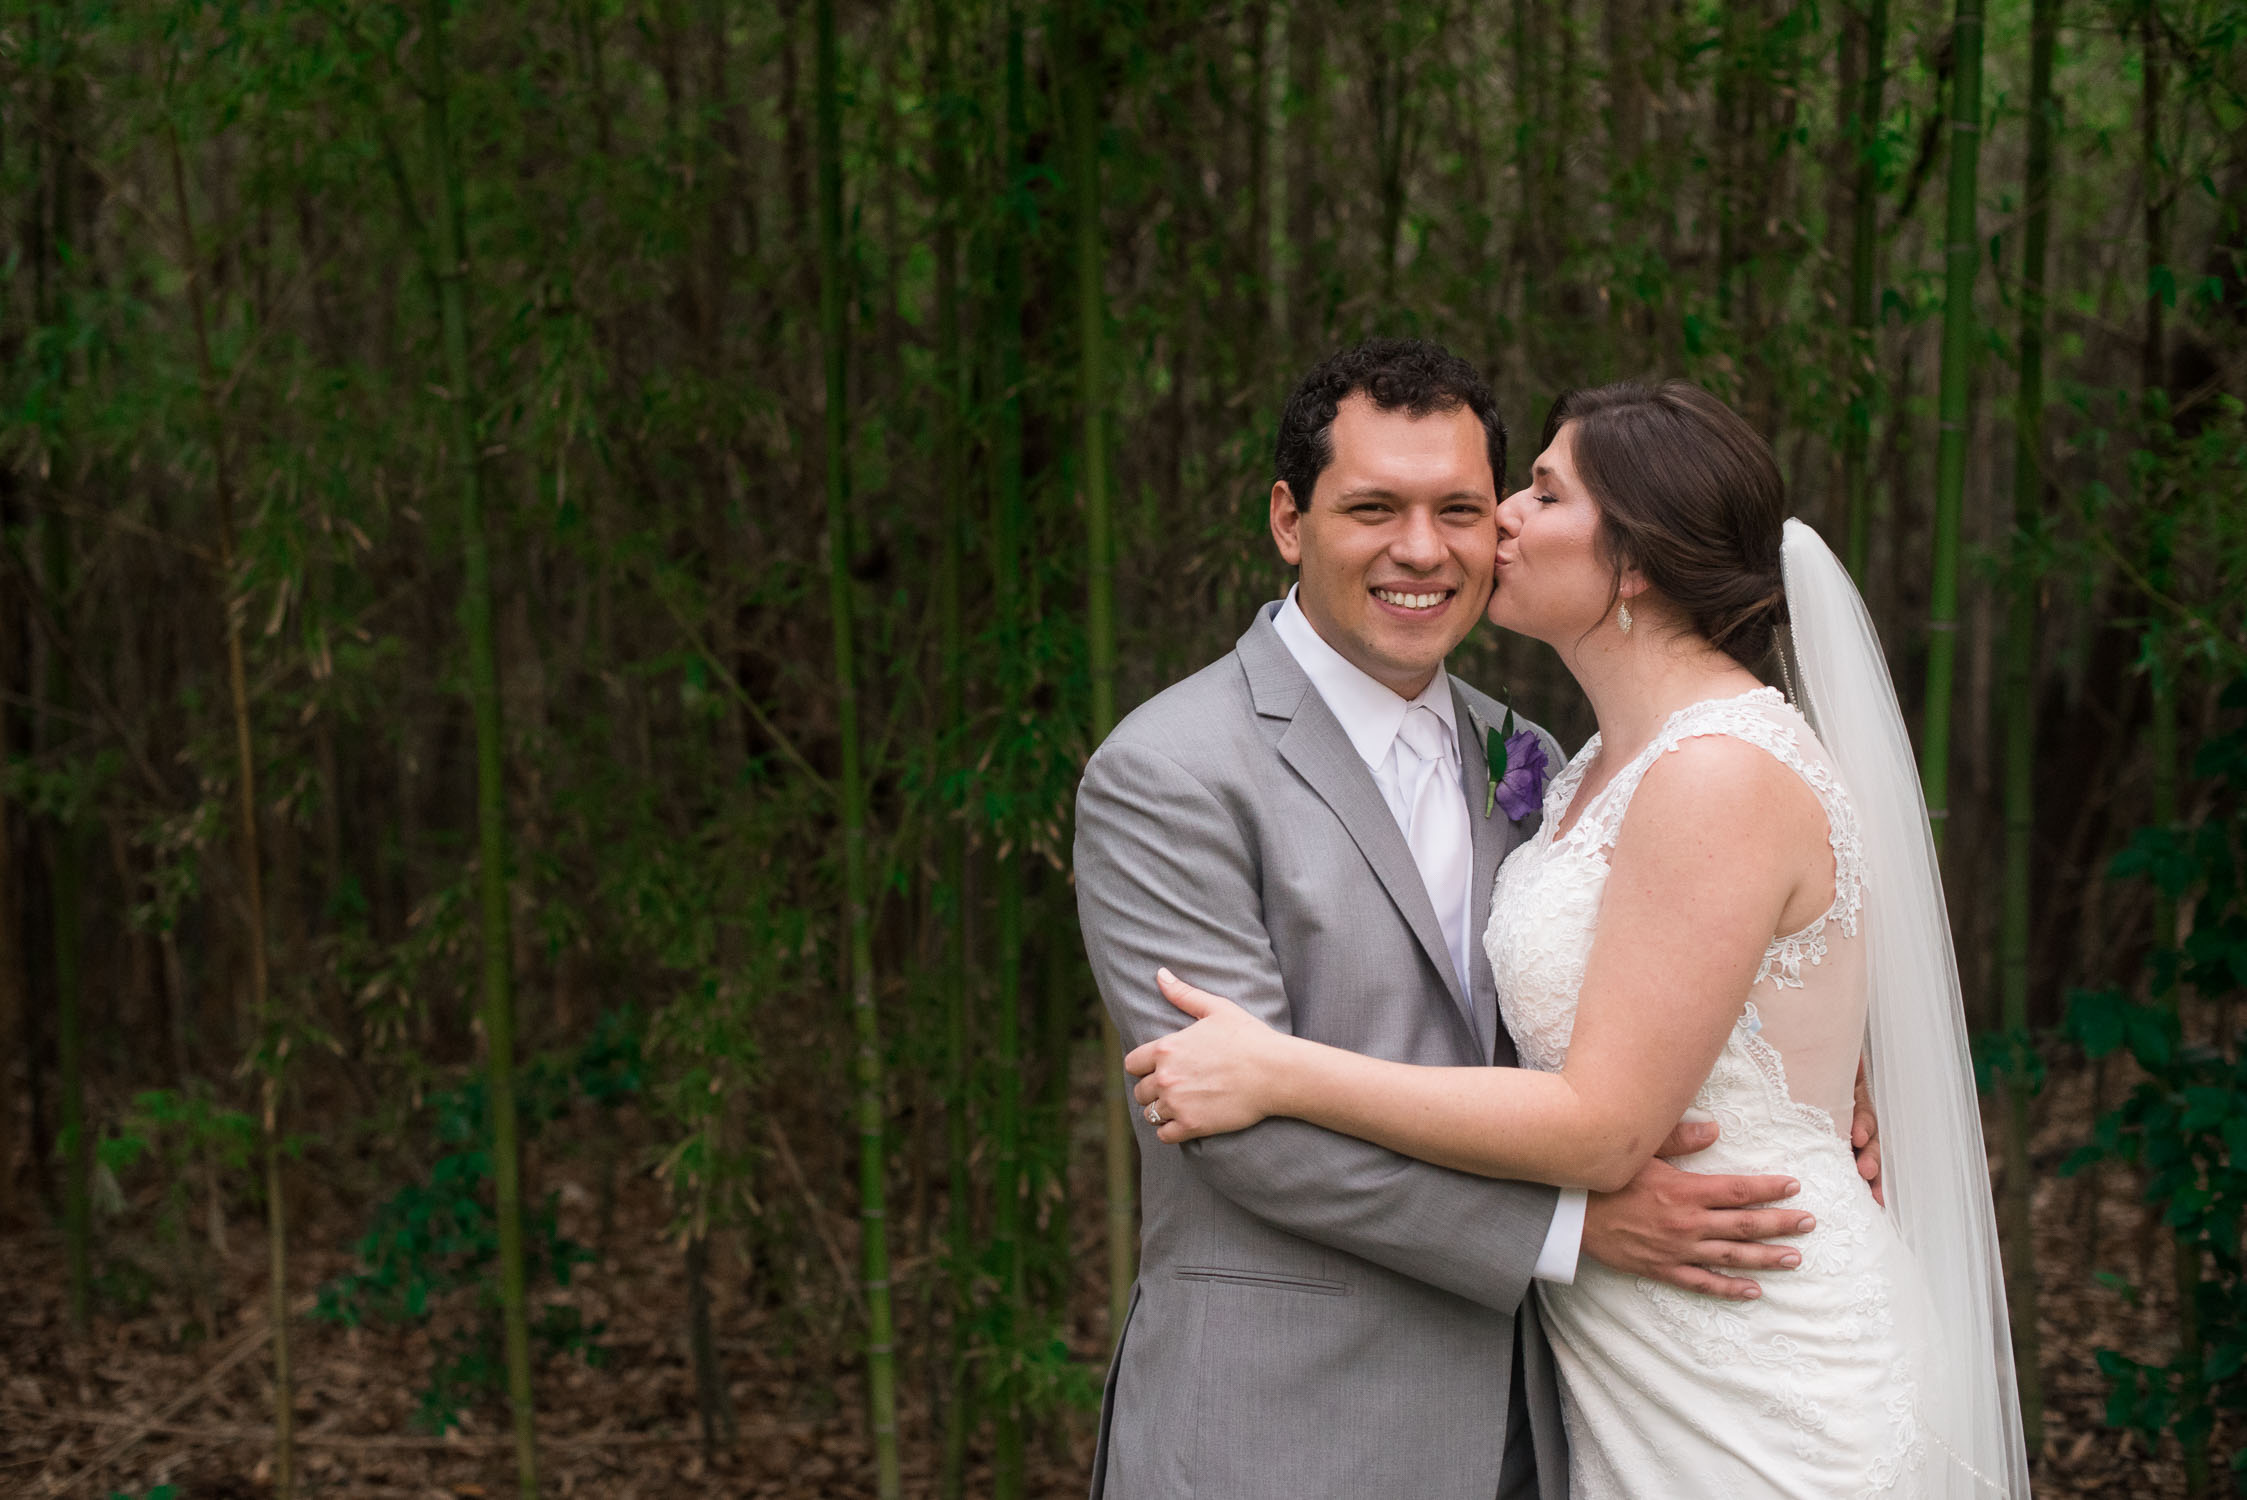 Alex and Austin Wedding Photography at Mercury Hall in Texas-121.jpg